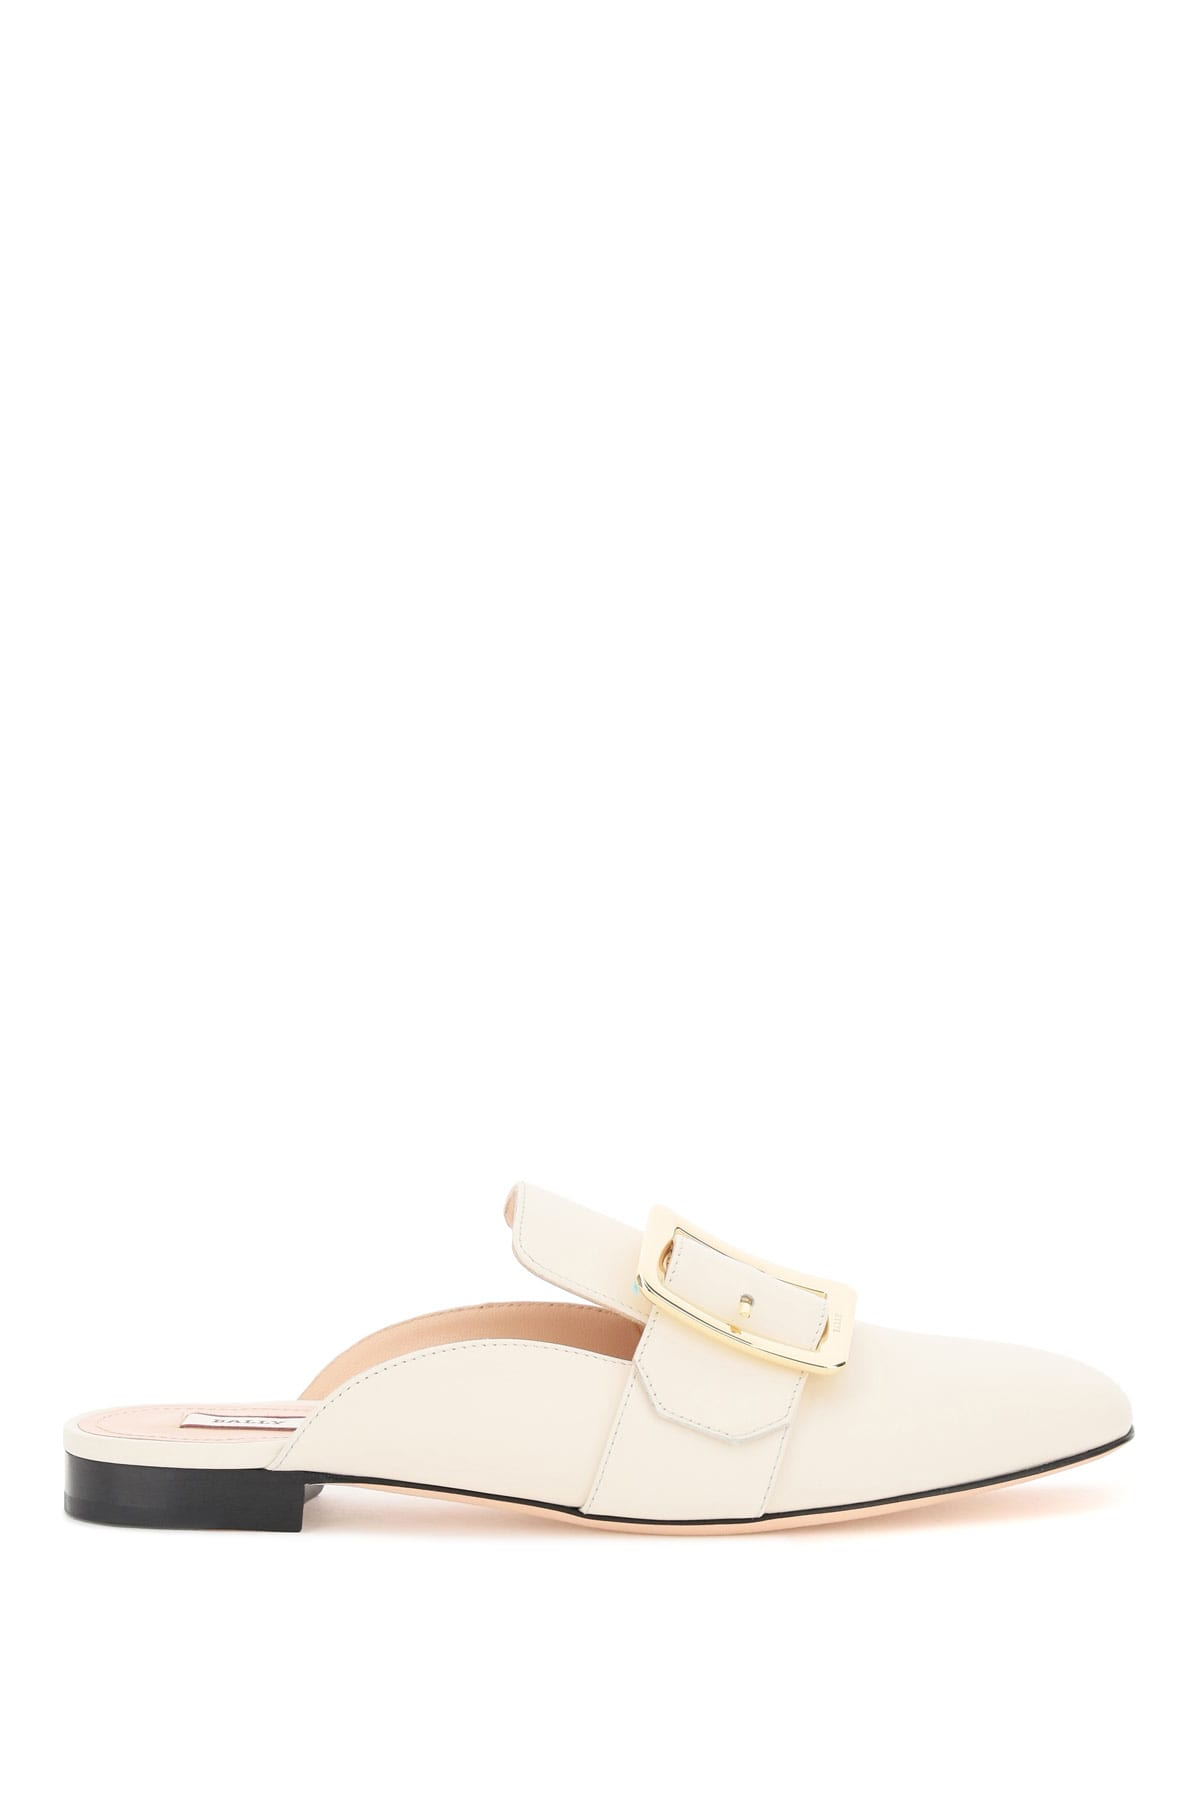 Bally JANELLE MULES